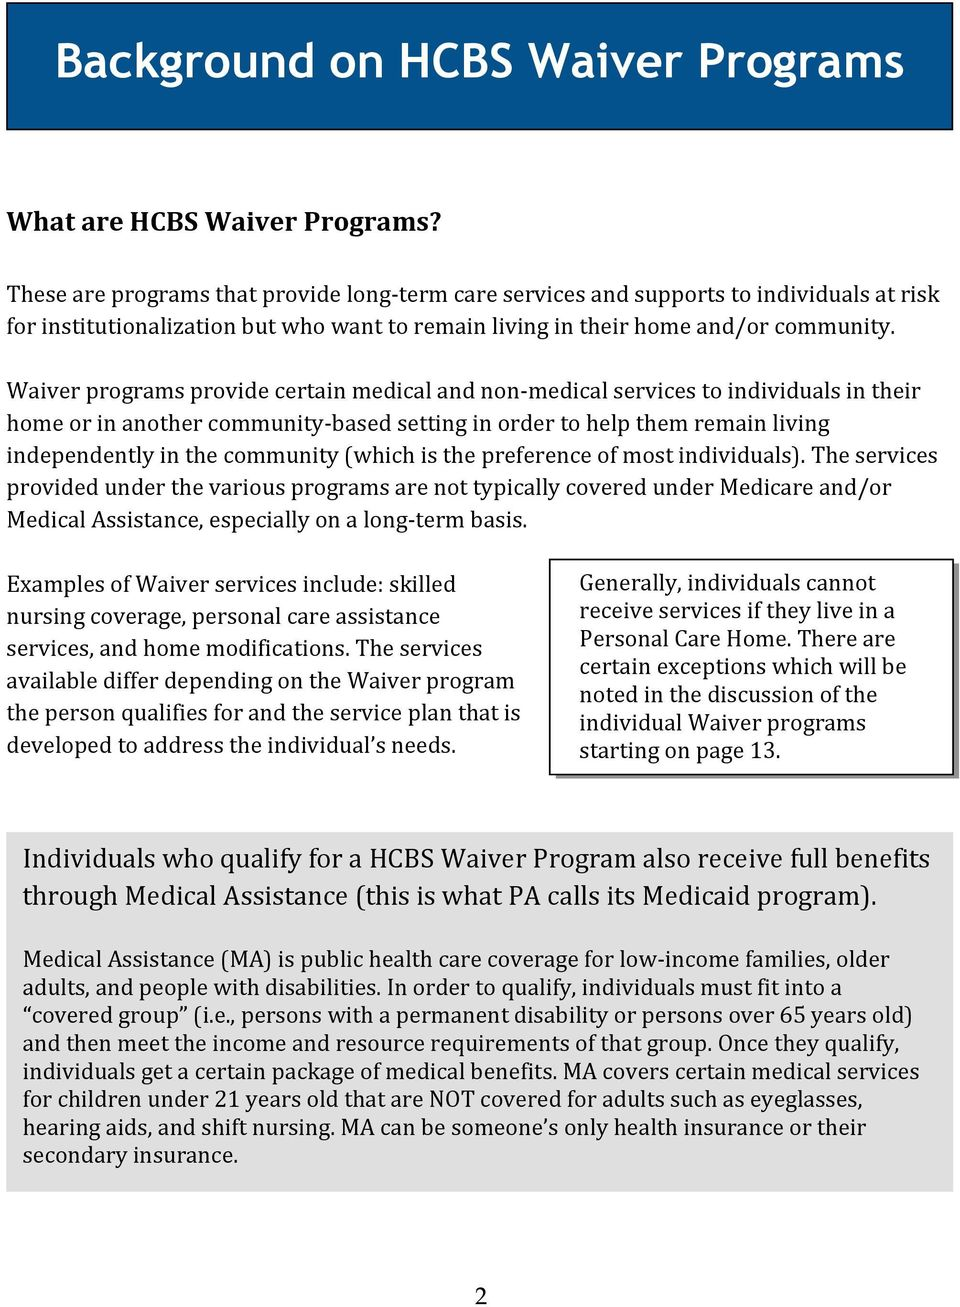 Waiver programs provide certain medical and non-medical services to individuals in their home or in another community-based setting in order to help them remain living independently in the community